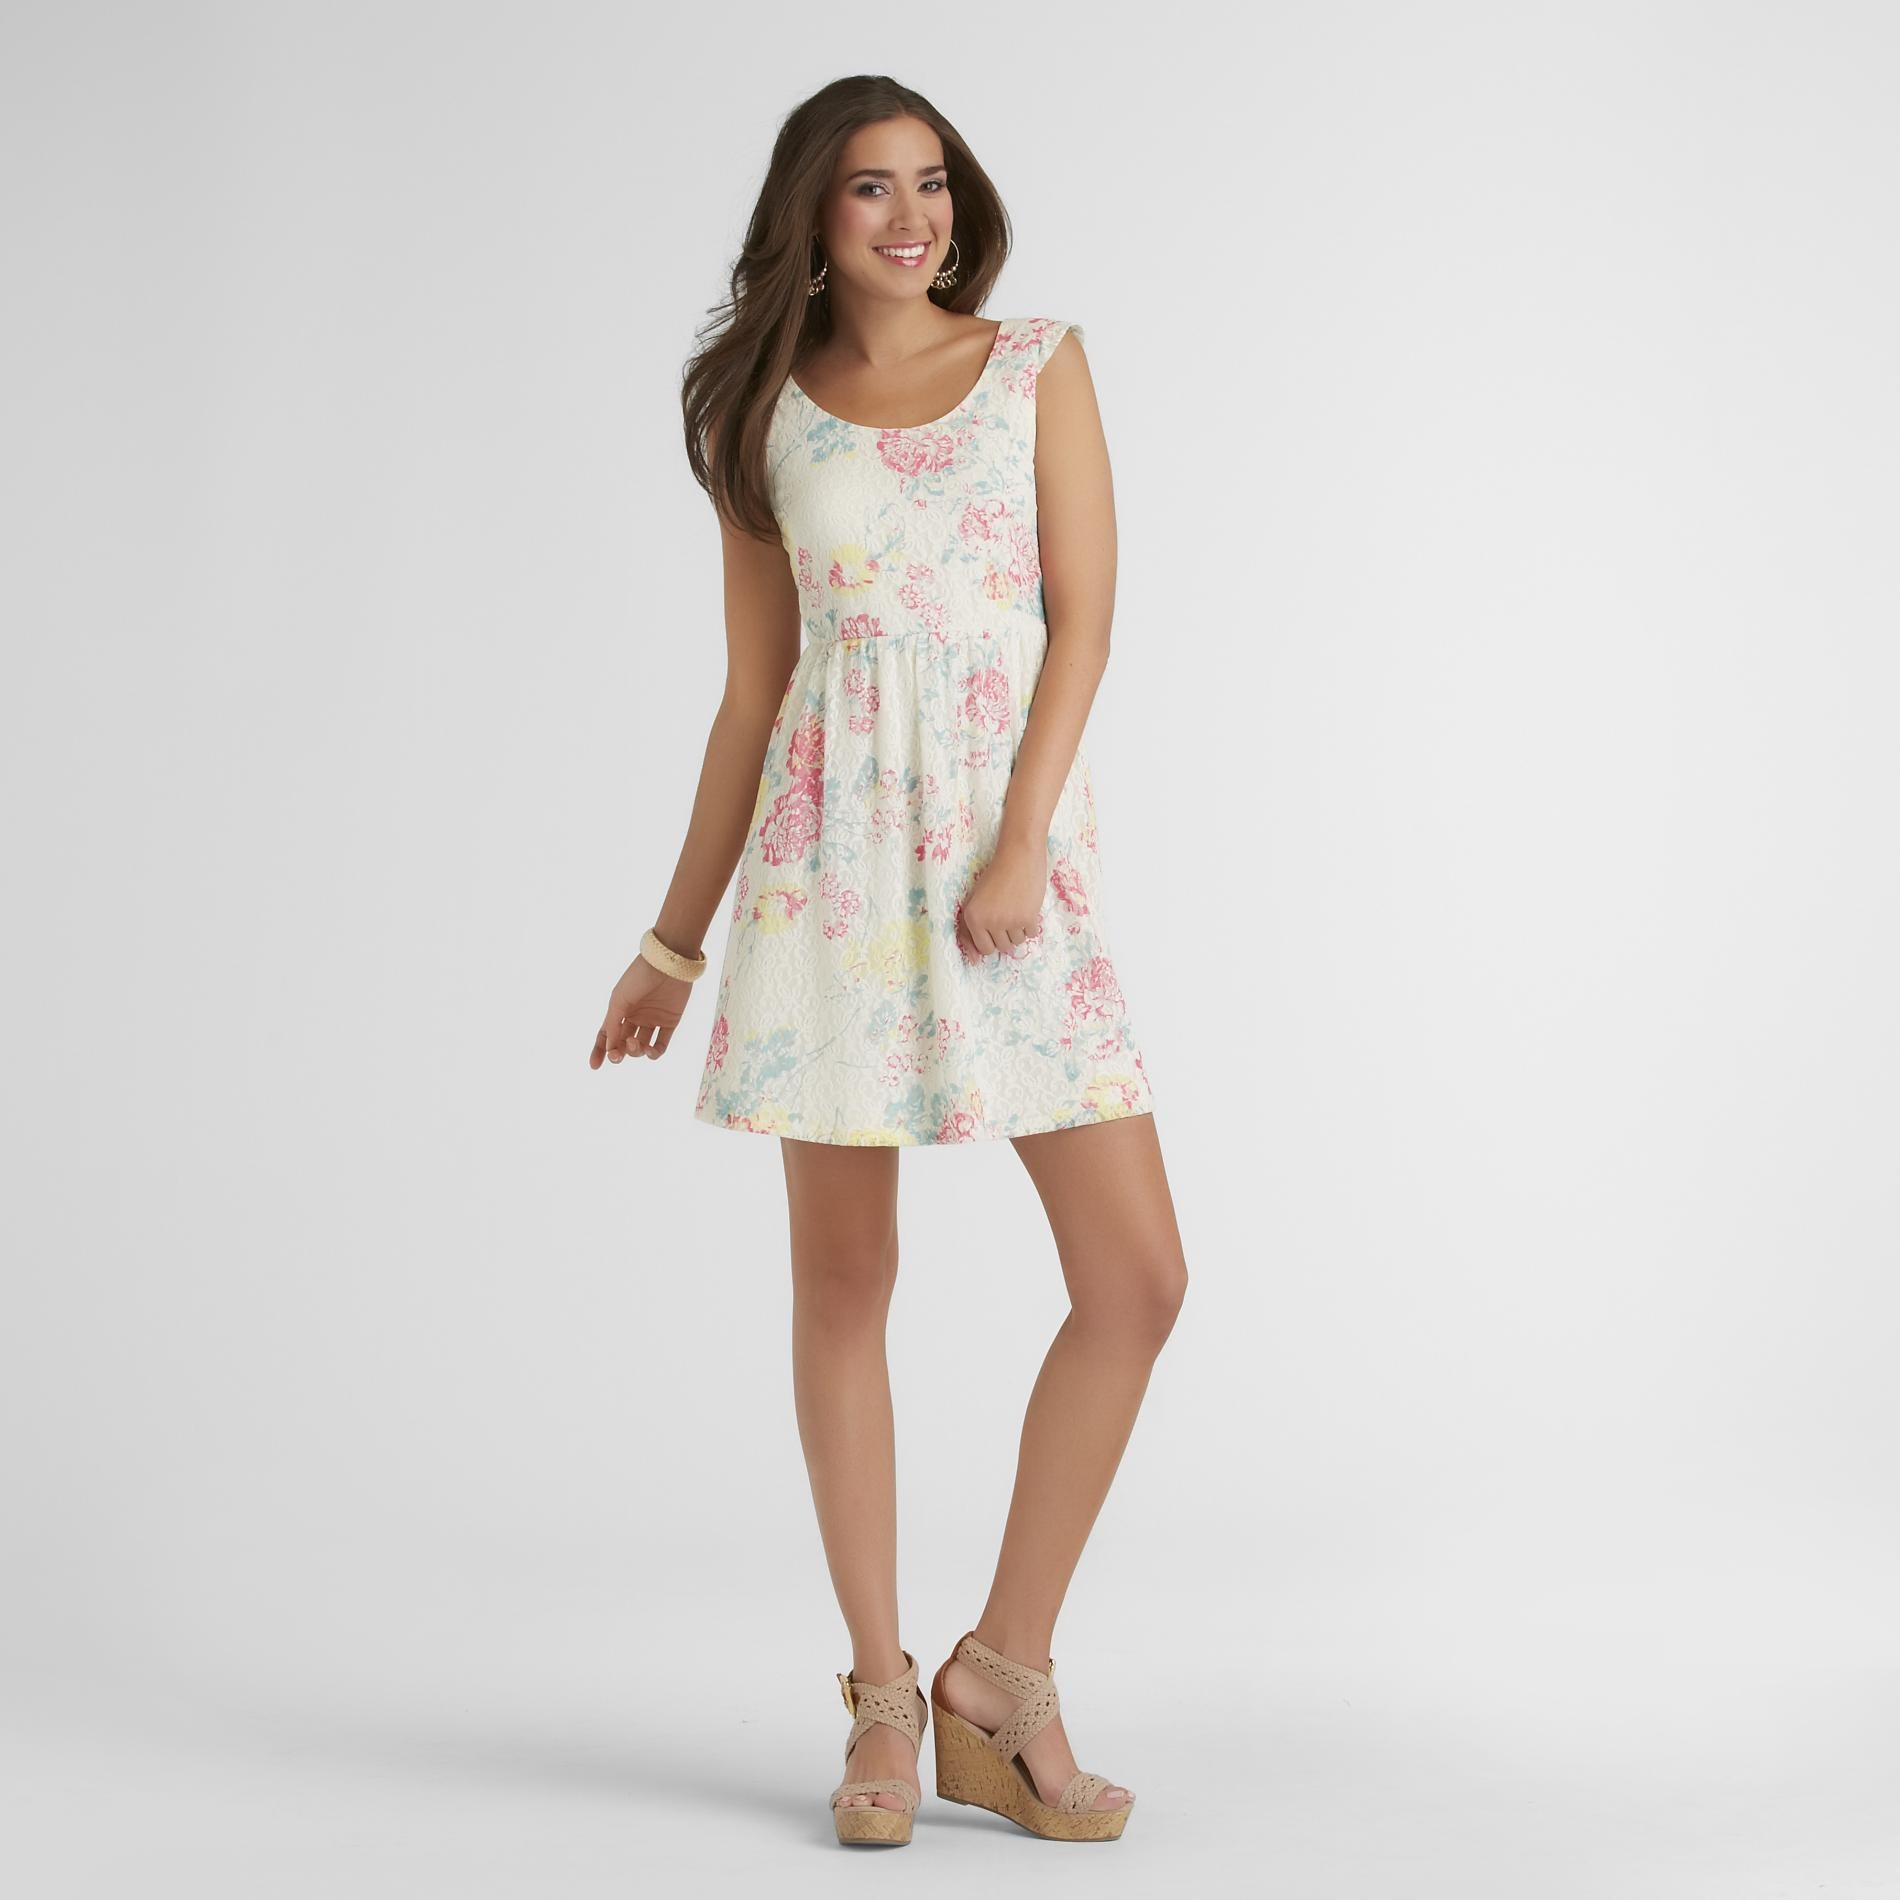 New Look Junior's Lace Dress - Floral at Sears.com